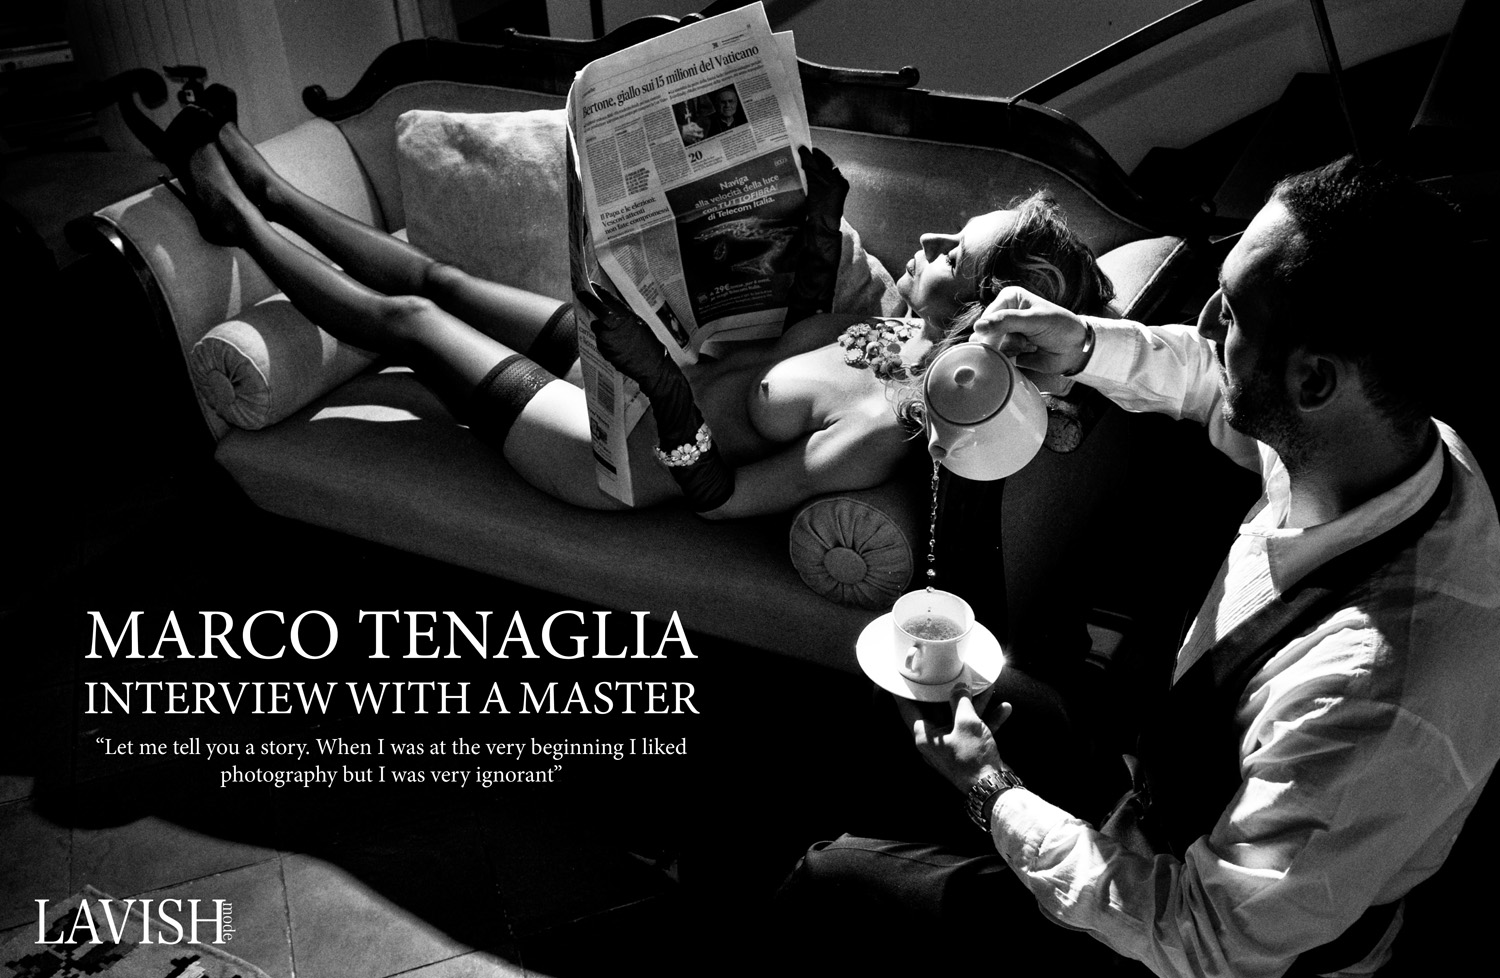 Marco Tenaglia: Interview with a master